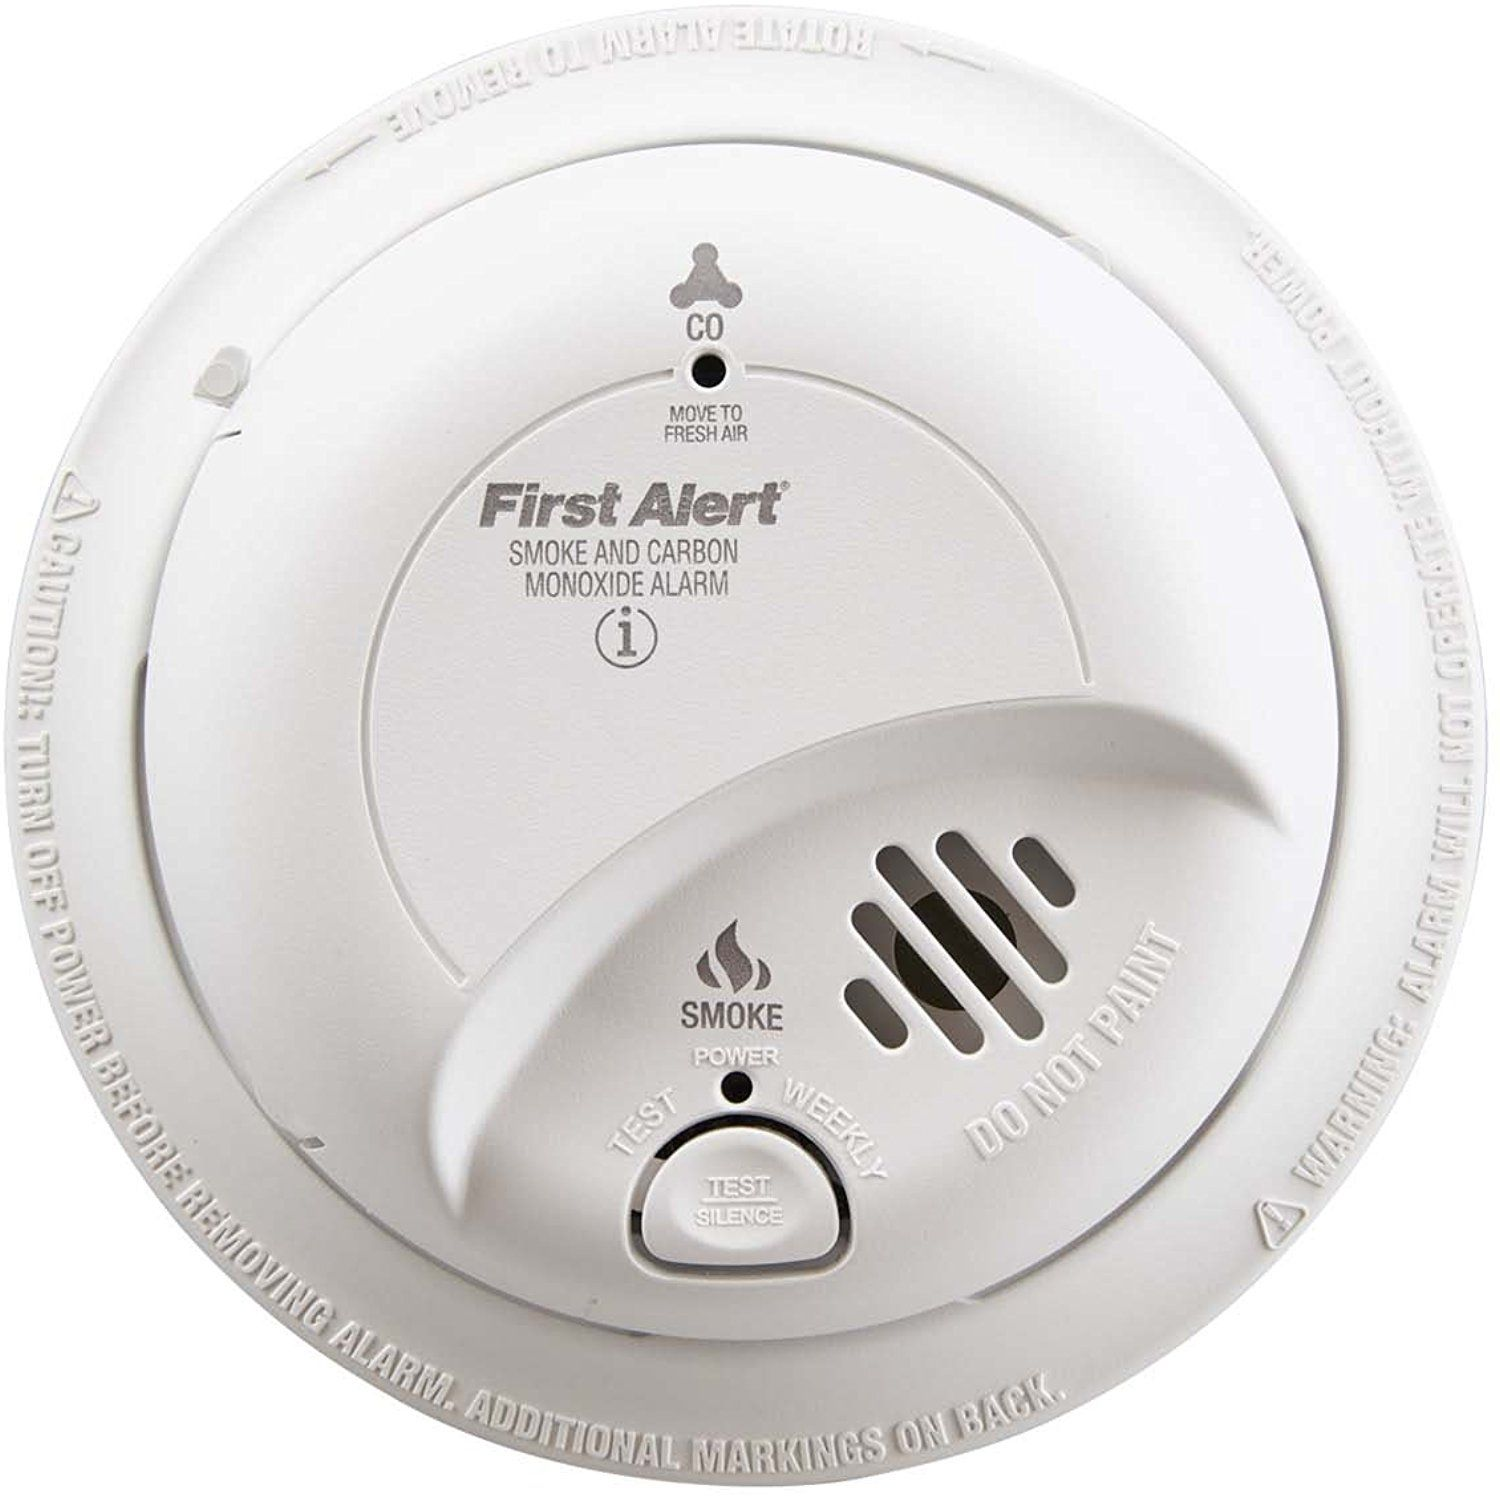 First Alert Brk Sc 9120b Hardwired Smoke And Carbon Monoxide Alarm With Battery Backup Visit The Battery Backup Carbon Monoxide Detector Smoke Alarms